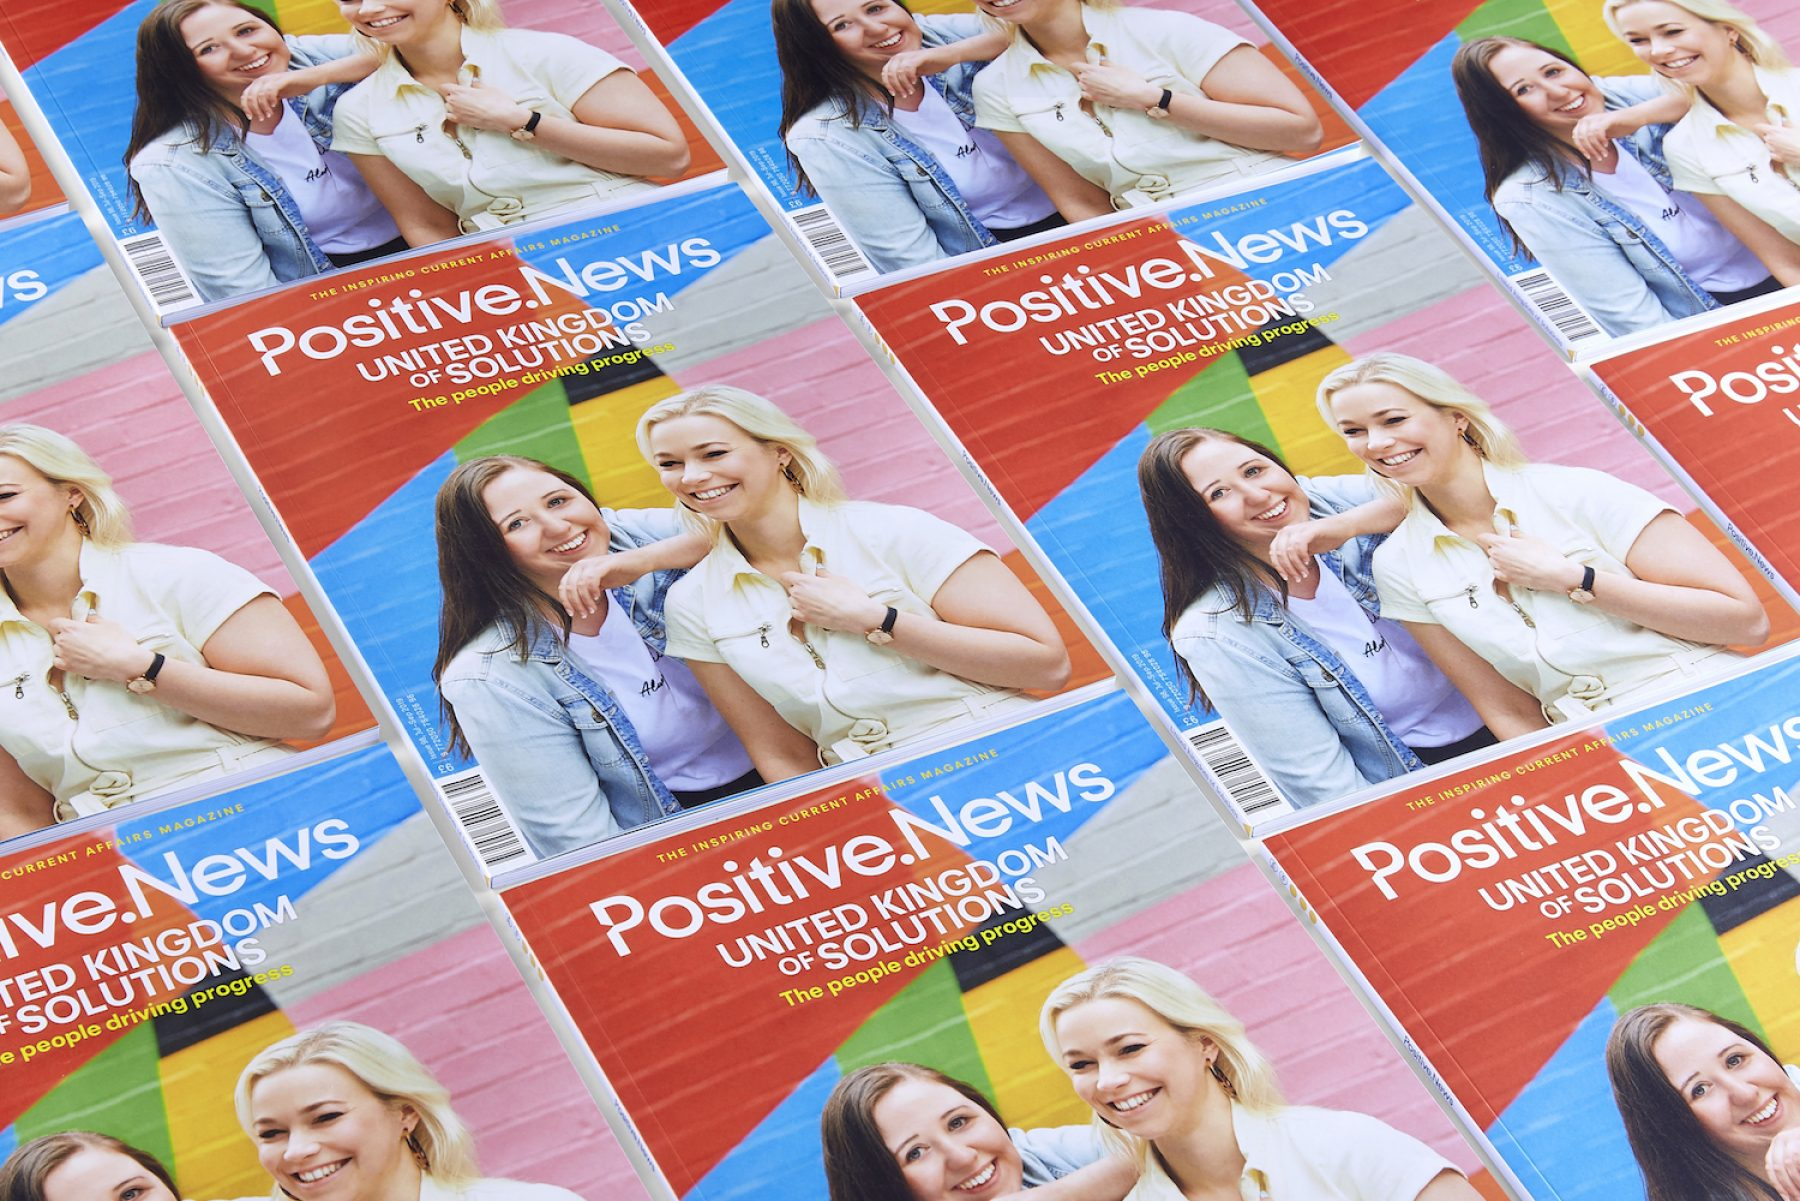 Image for A love song for the UK: latest issue of Positive News magazine celebrates what the UK can be proud of